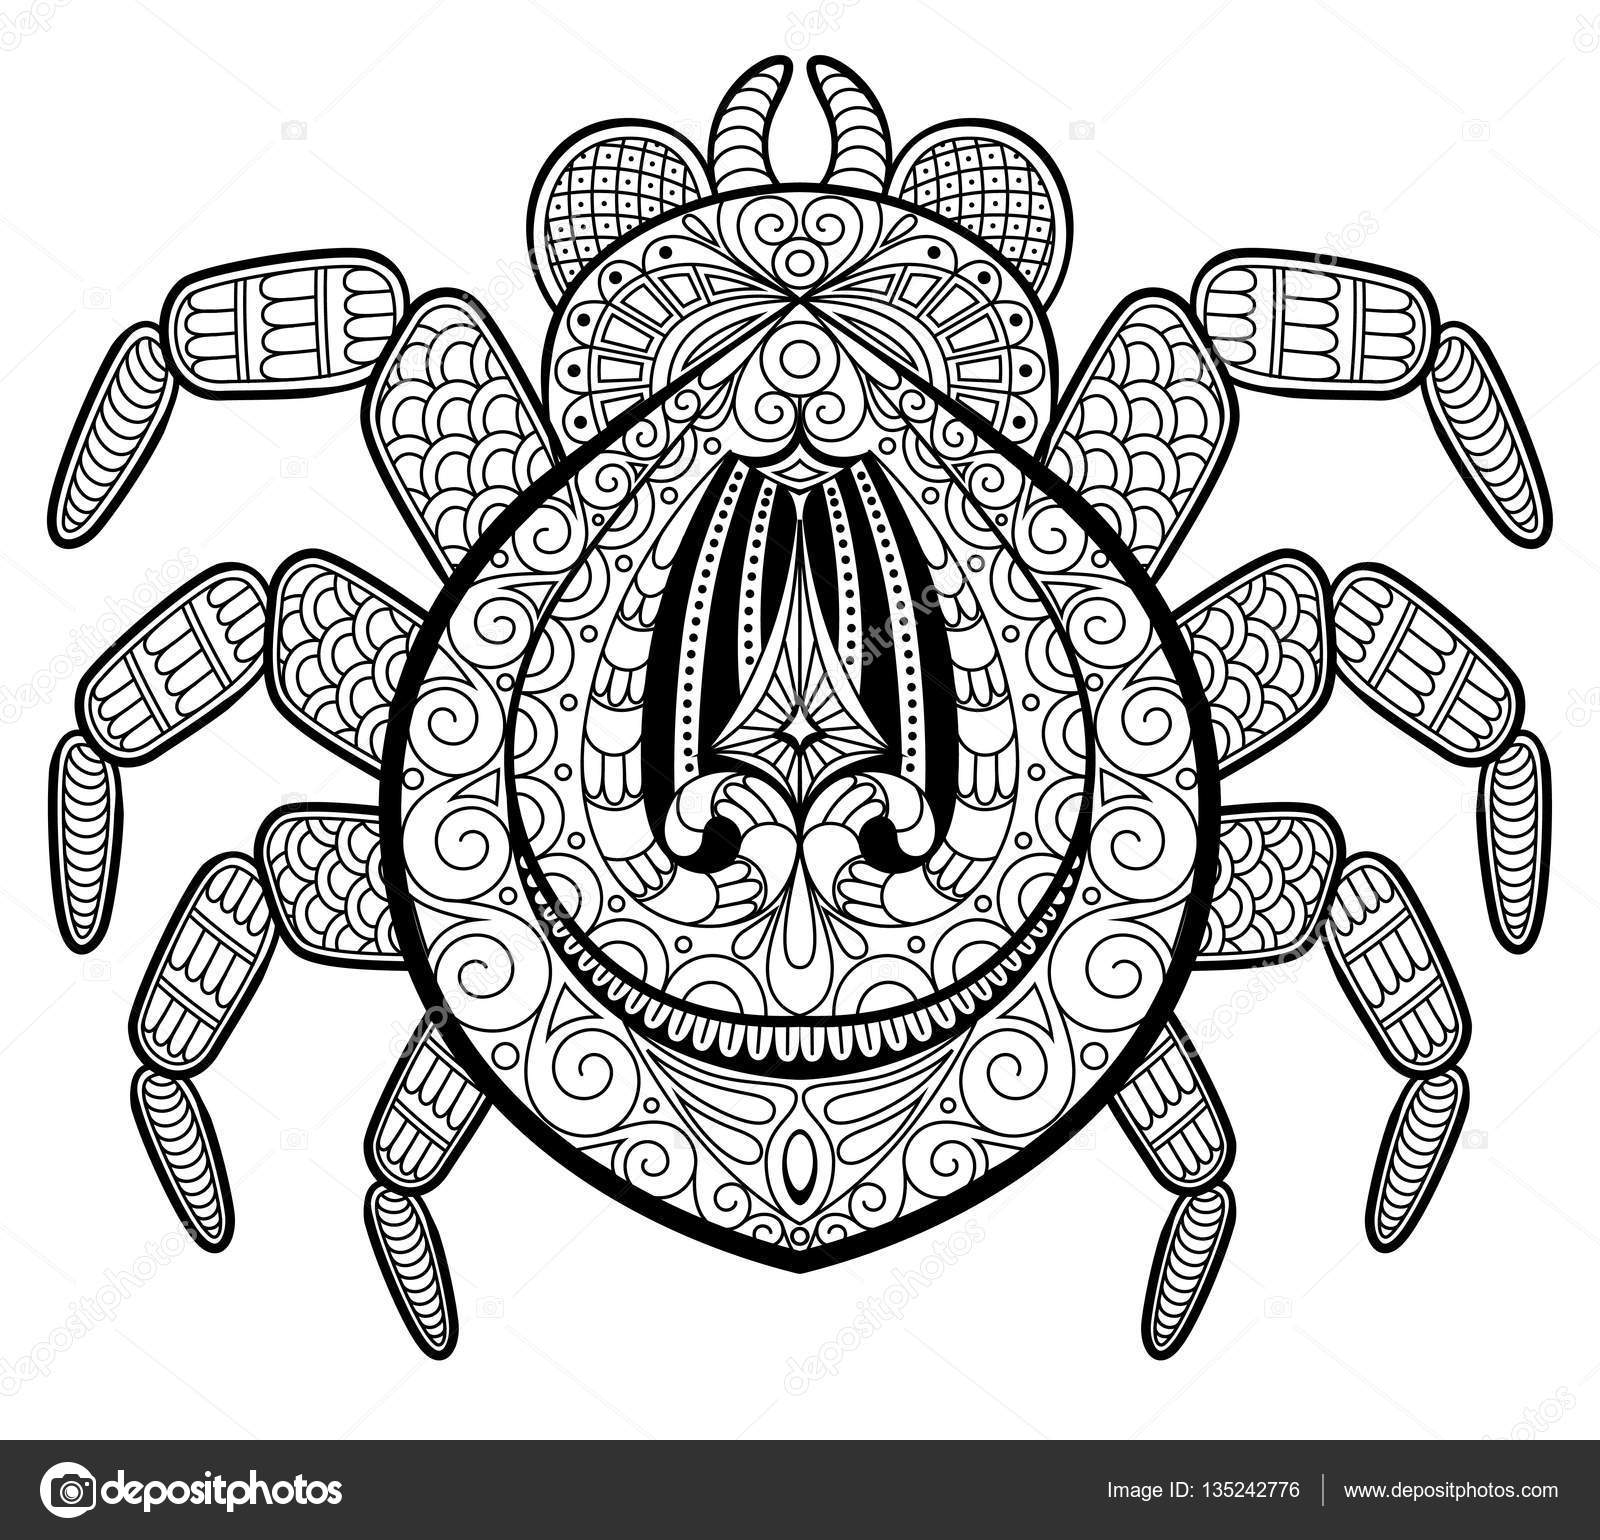 1600x1540 Spider In Zentangle Style For Tattoo. Print Or T Shirt. Adult